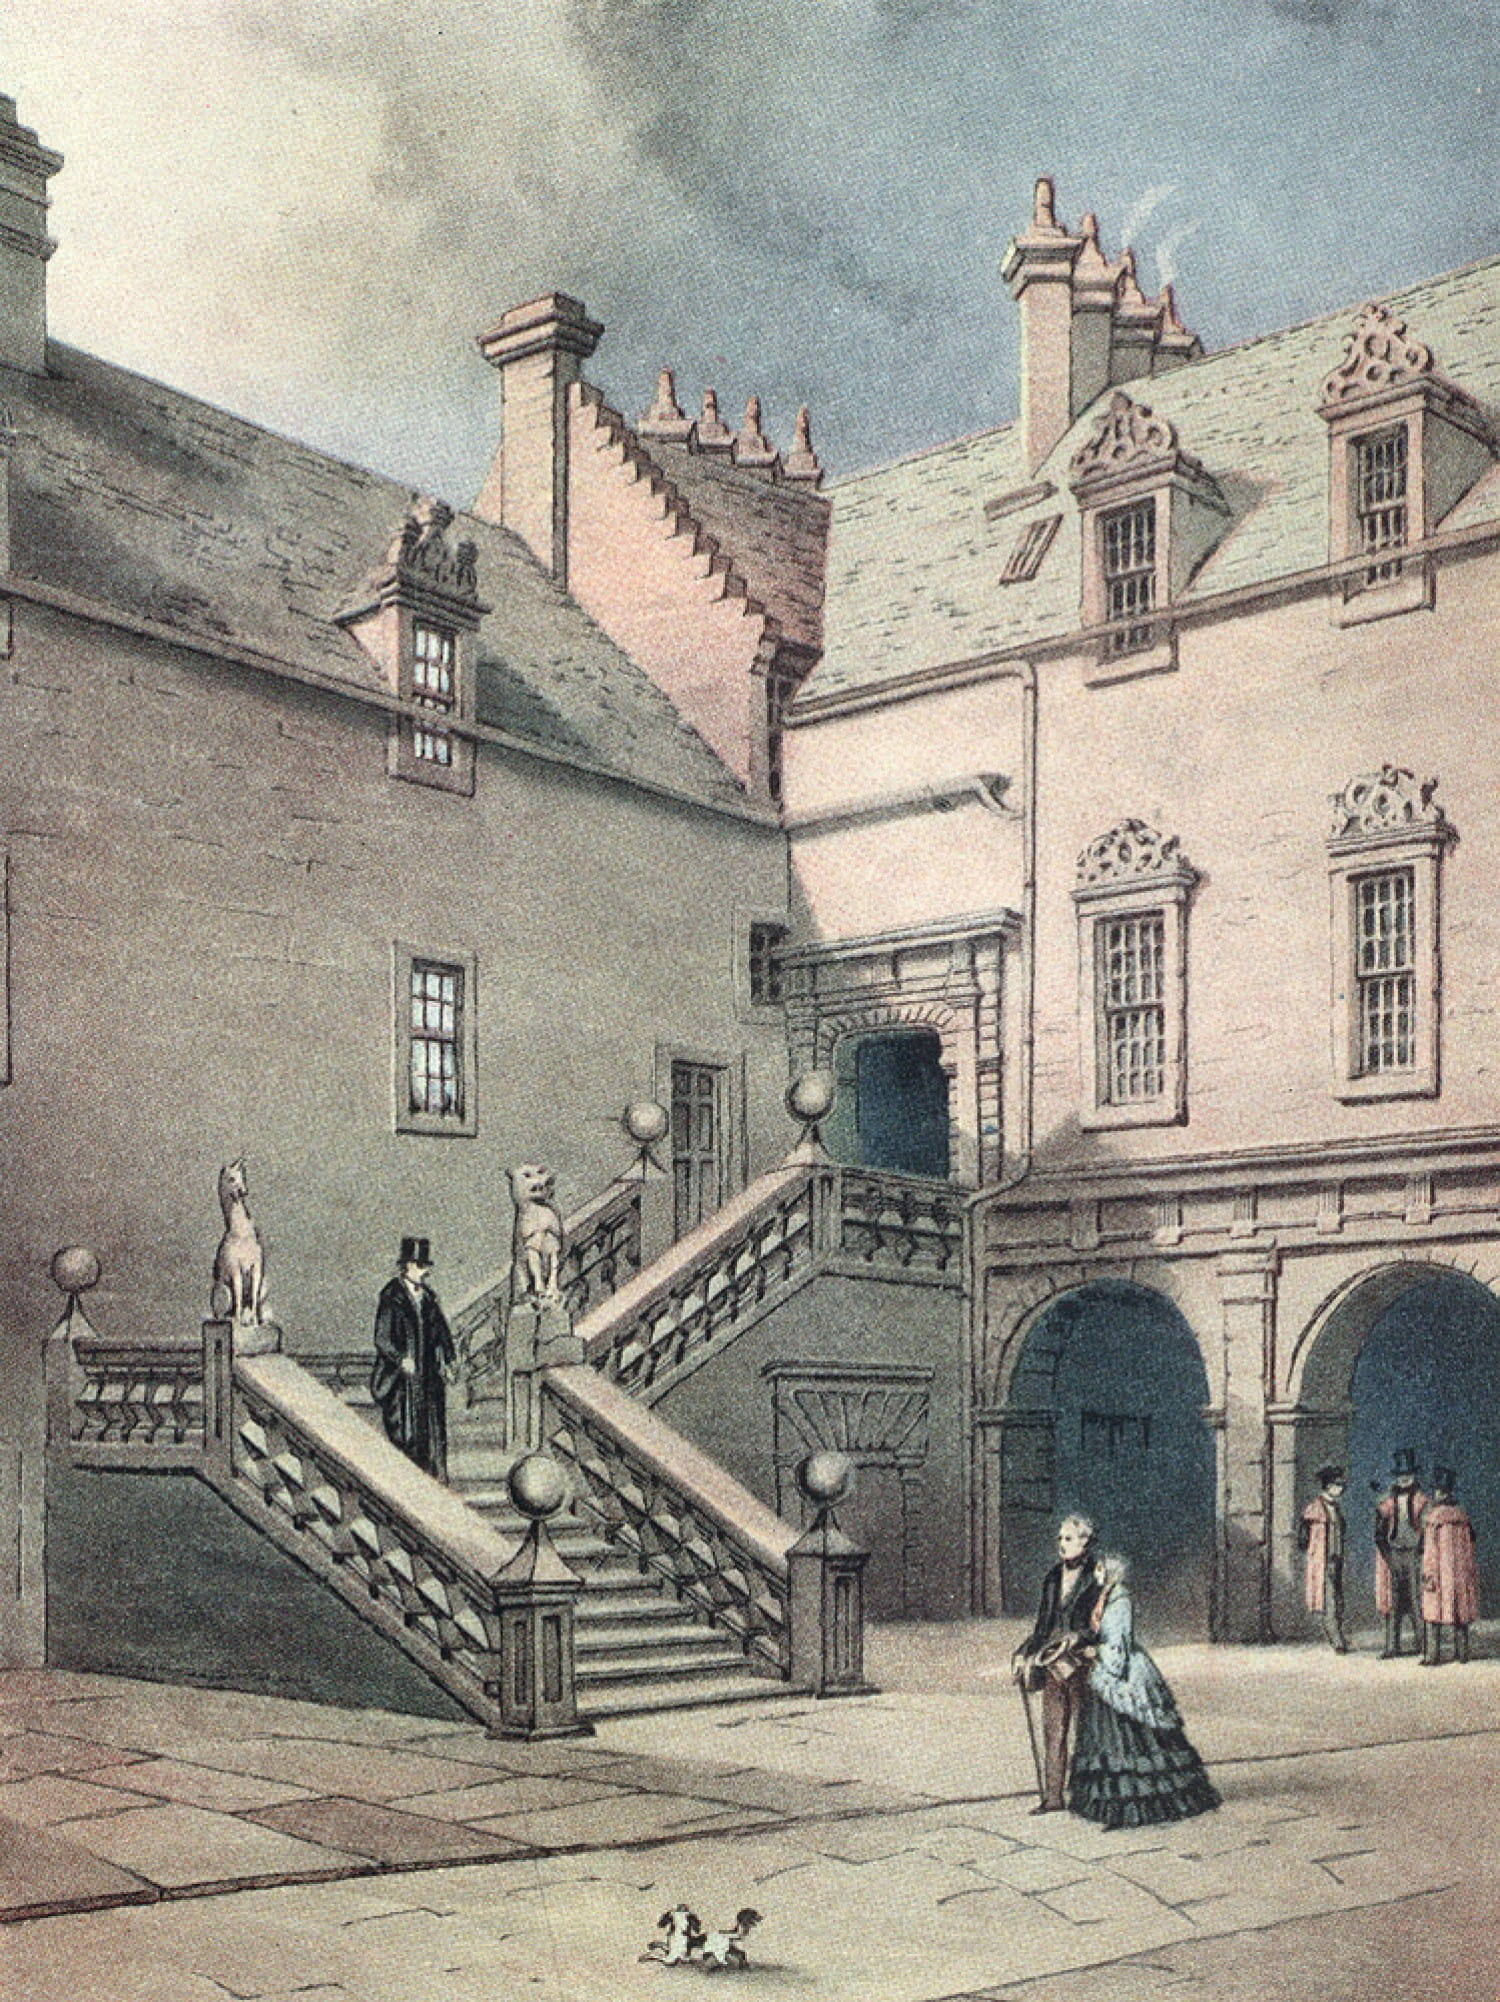 The Staircase, as painted by Thomas Fairbairn, in 1849